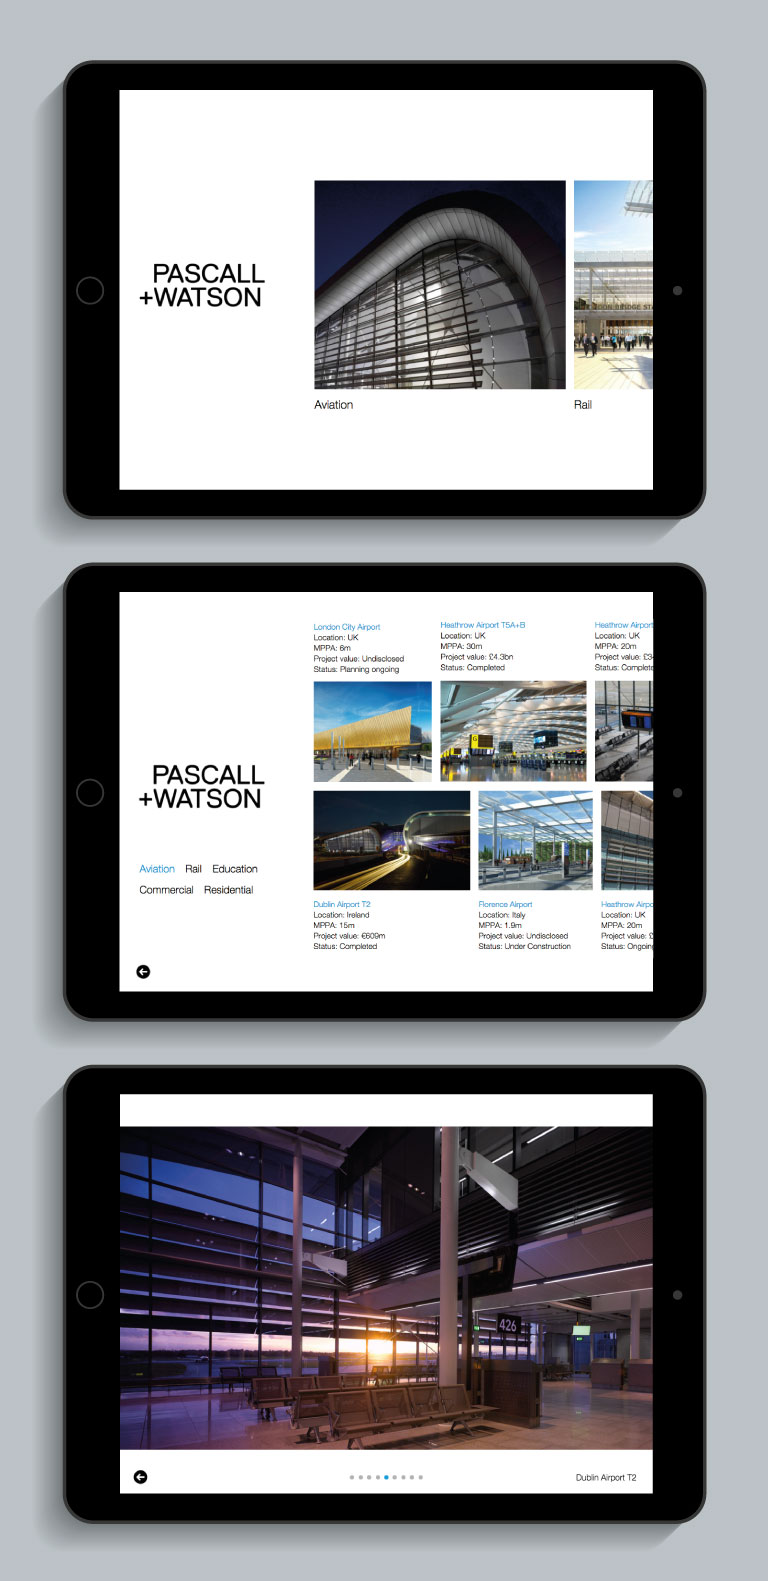 The Pascall+Watson iPad app displayed on an iPad - mobile